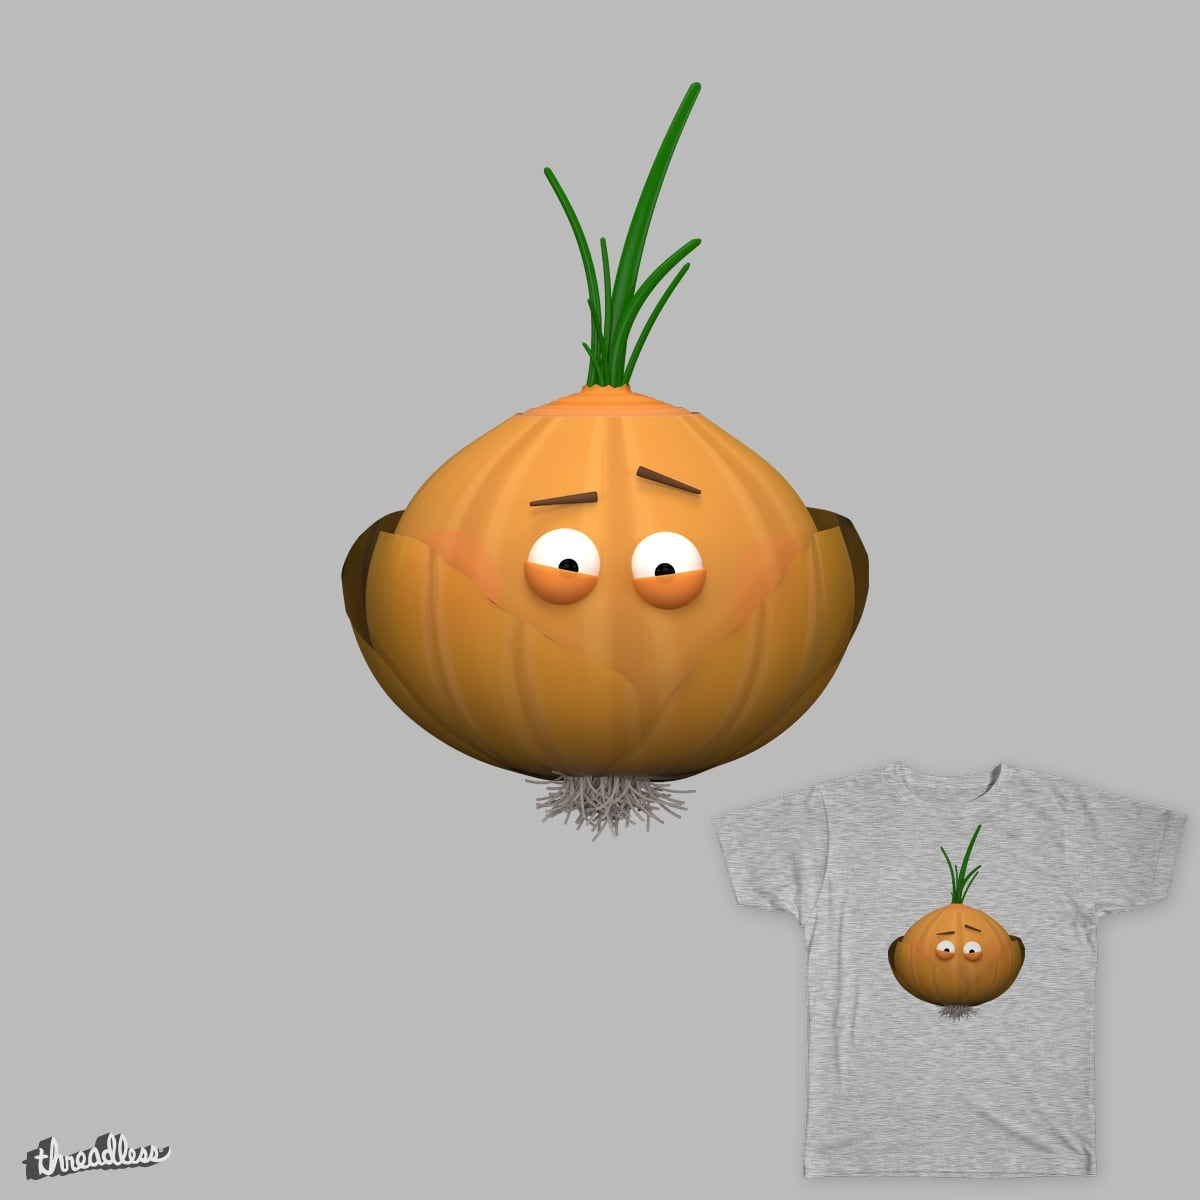 Mr. Onion by Iewukas on Threadless